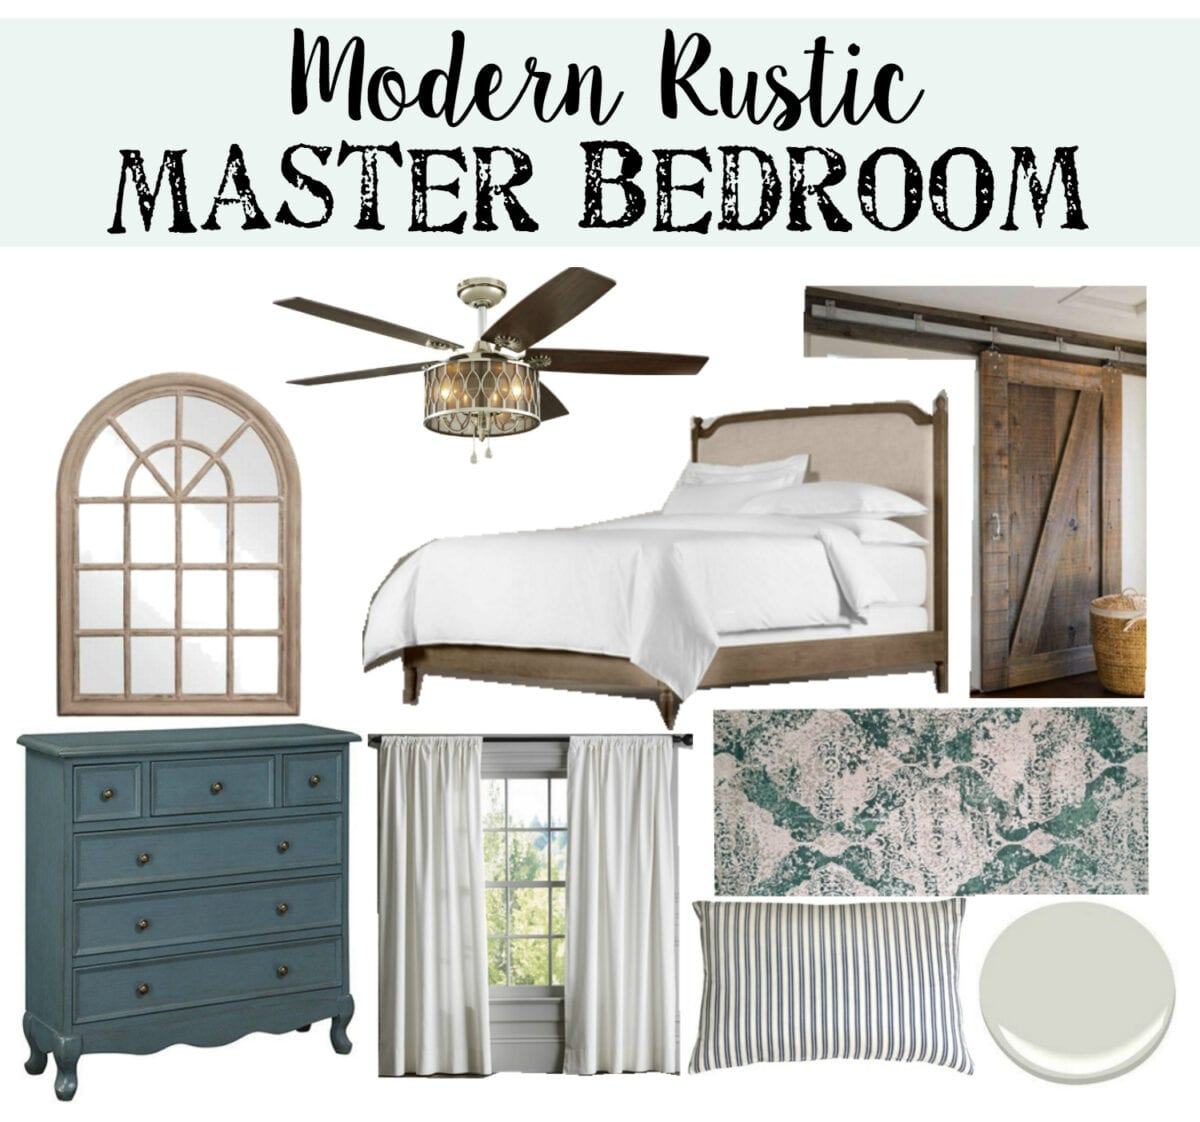 Modern Classic And Rustic Bedrooms: Modern Rustic Master Bedroom Design Plan